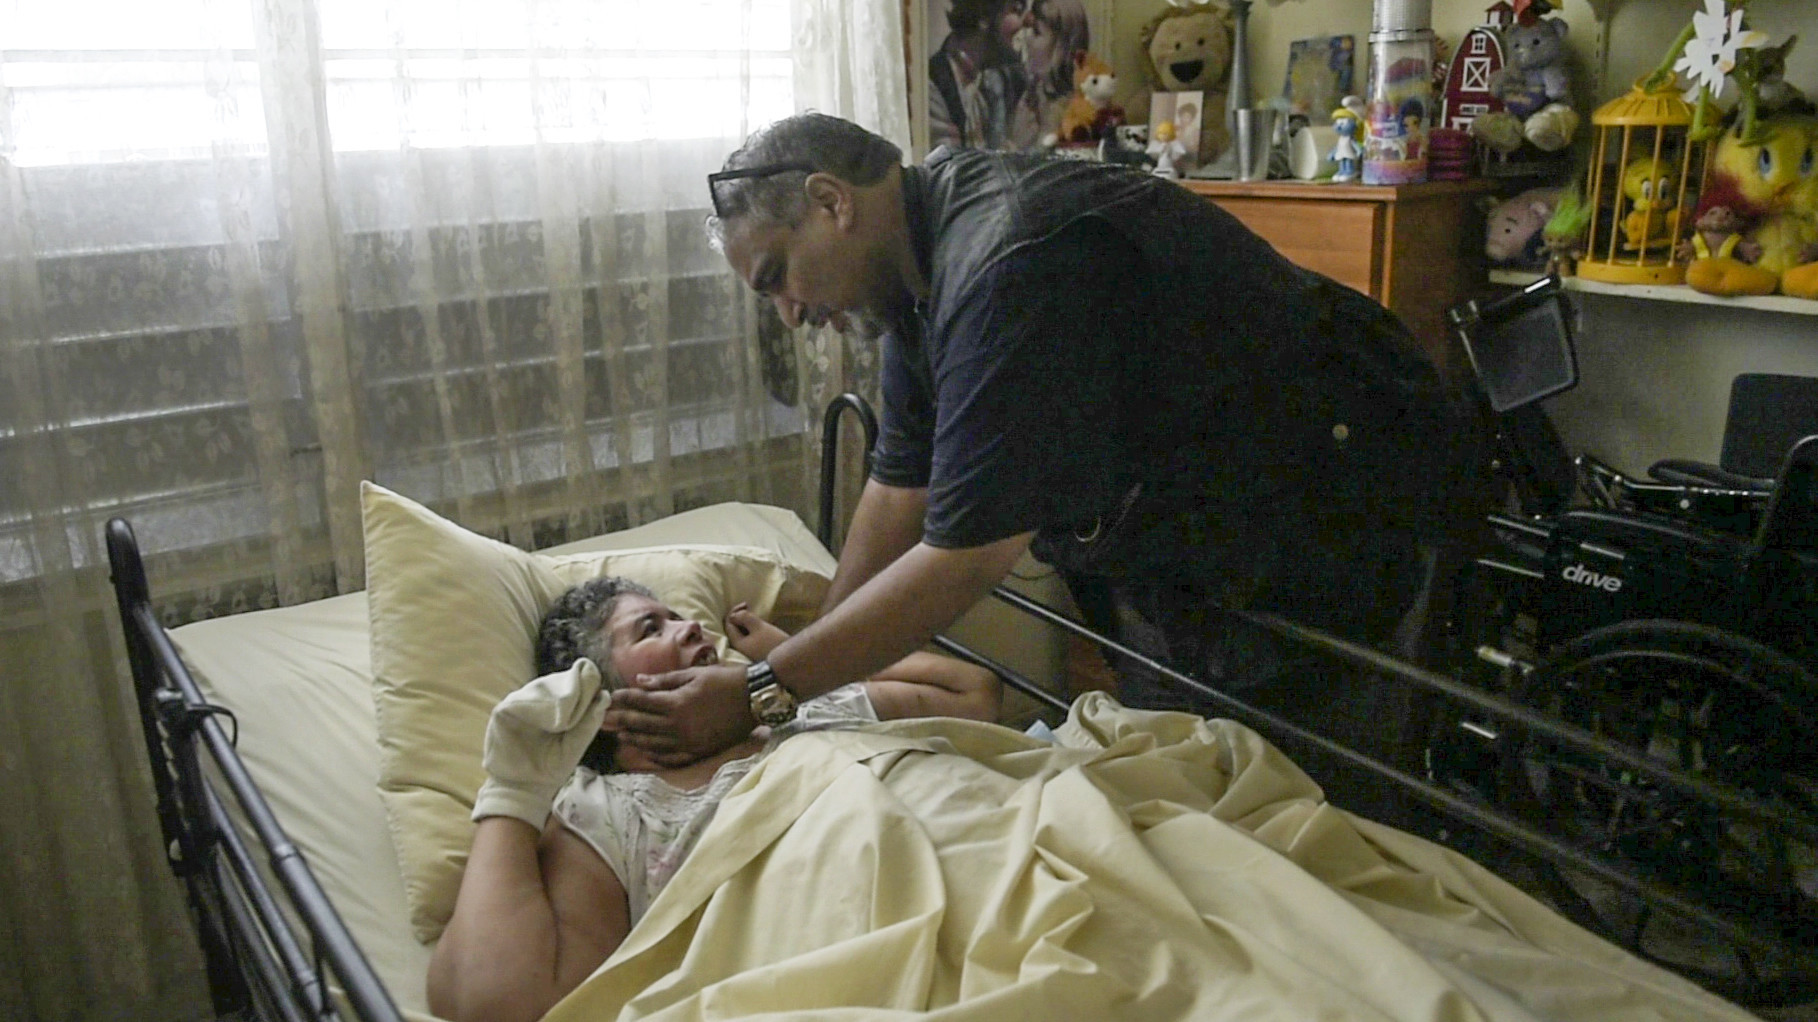 Elliot Matos greets his niece Bernadette de Jesus during a visit to her home in Vega Baja, Puerto Rico. De Jesus has Williams syndrome, a developmental disorder. Matos visited her and his sister Raquel to deliver water, solar panels and other supplies in the wake of Hurricane Maria.